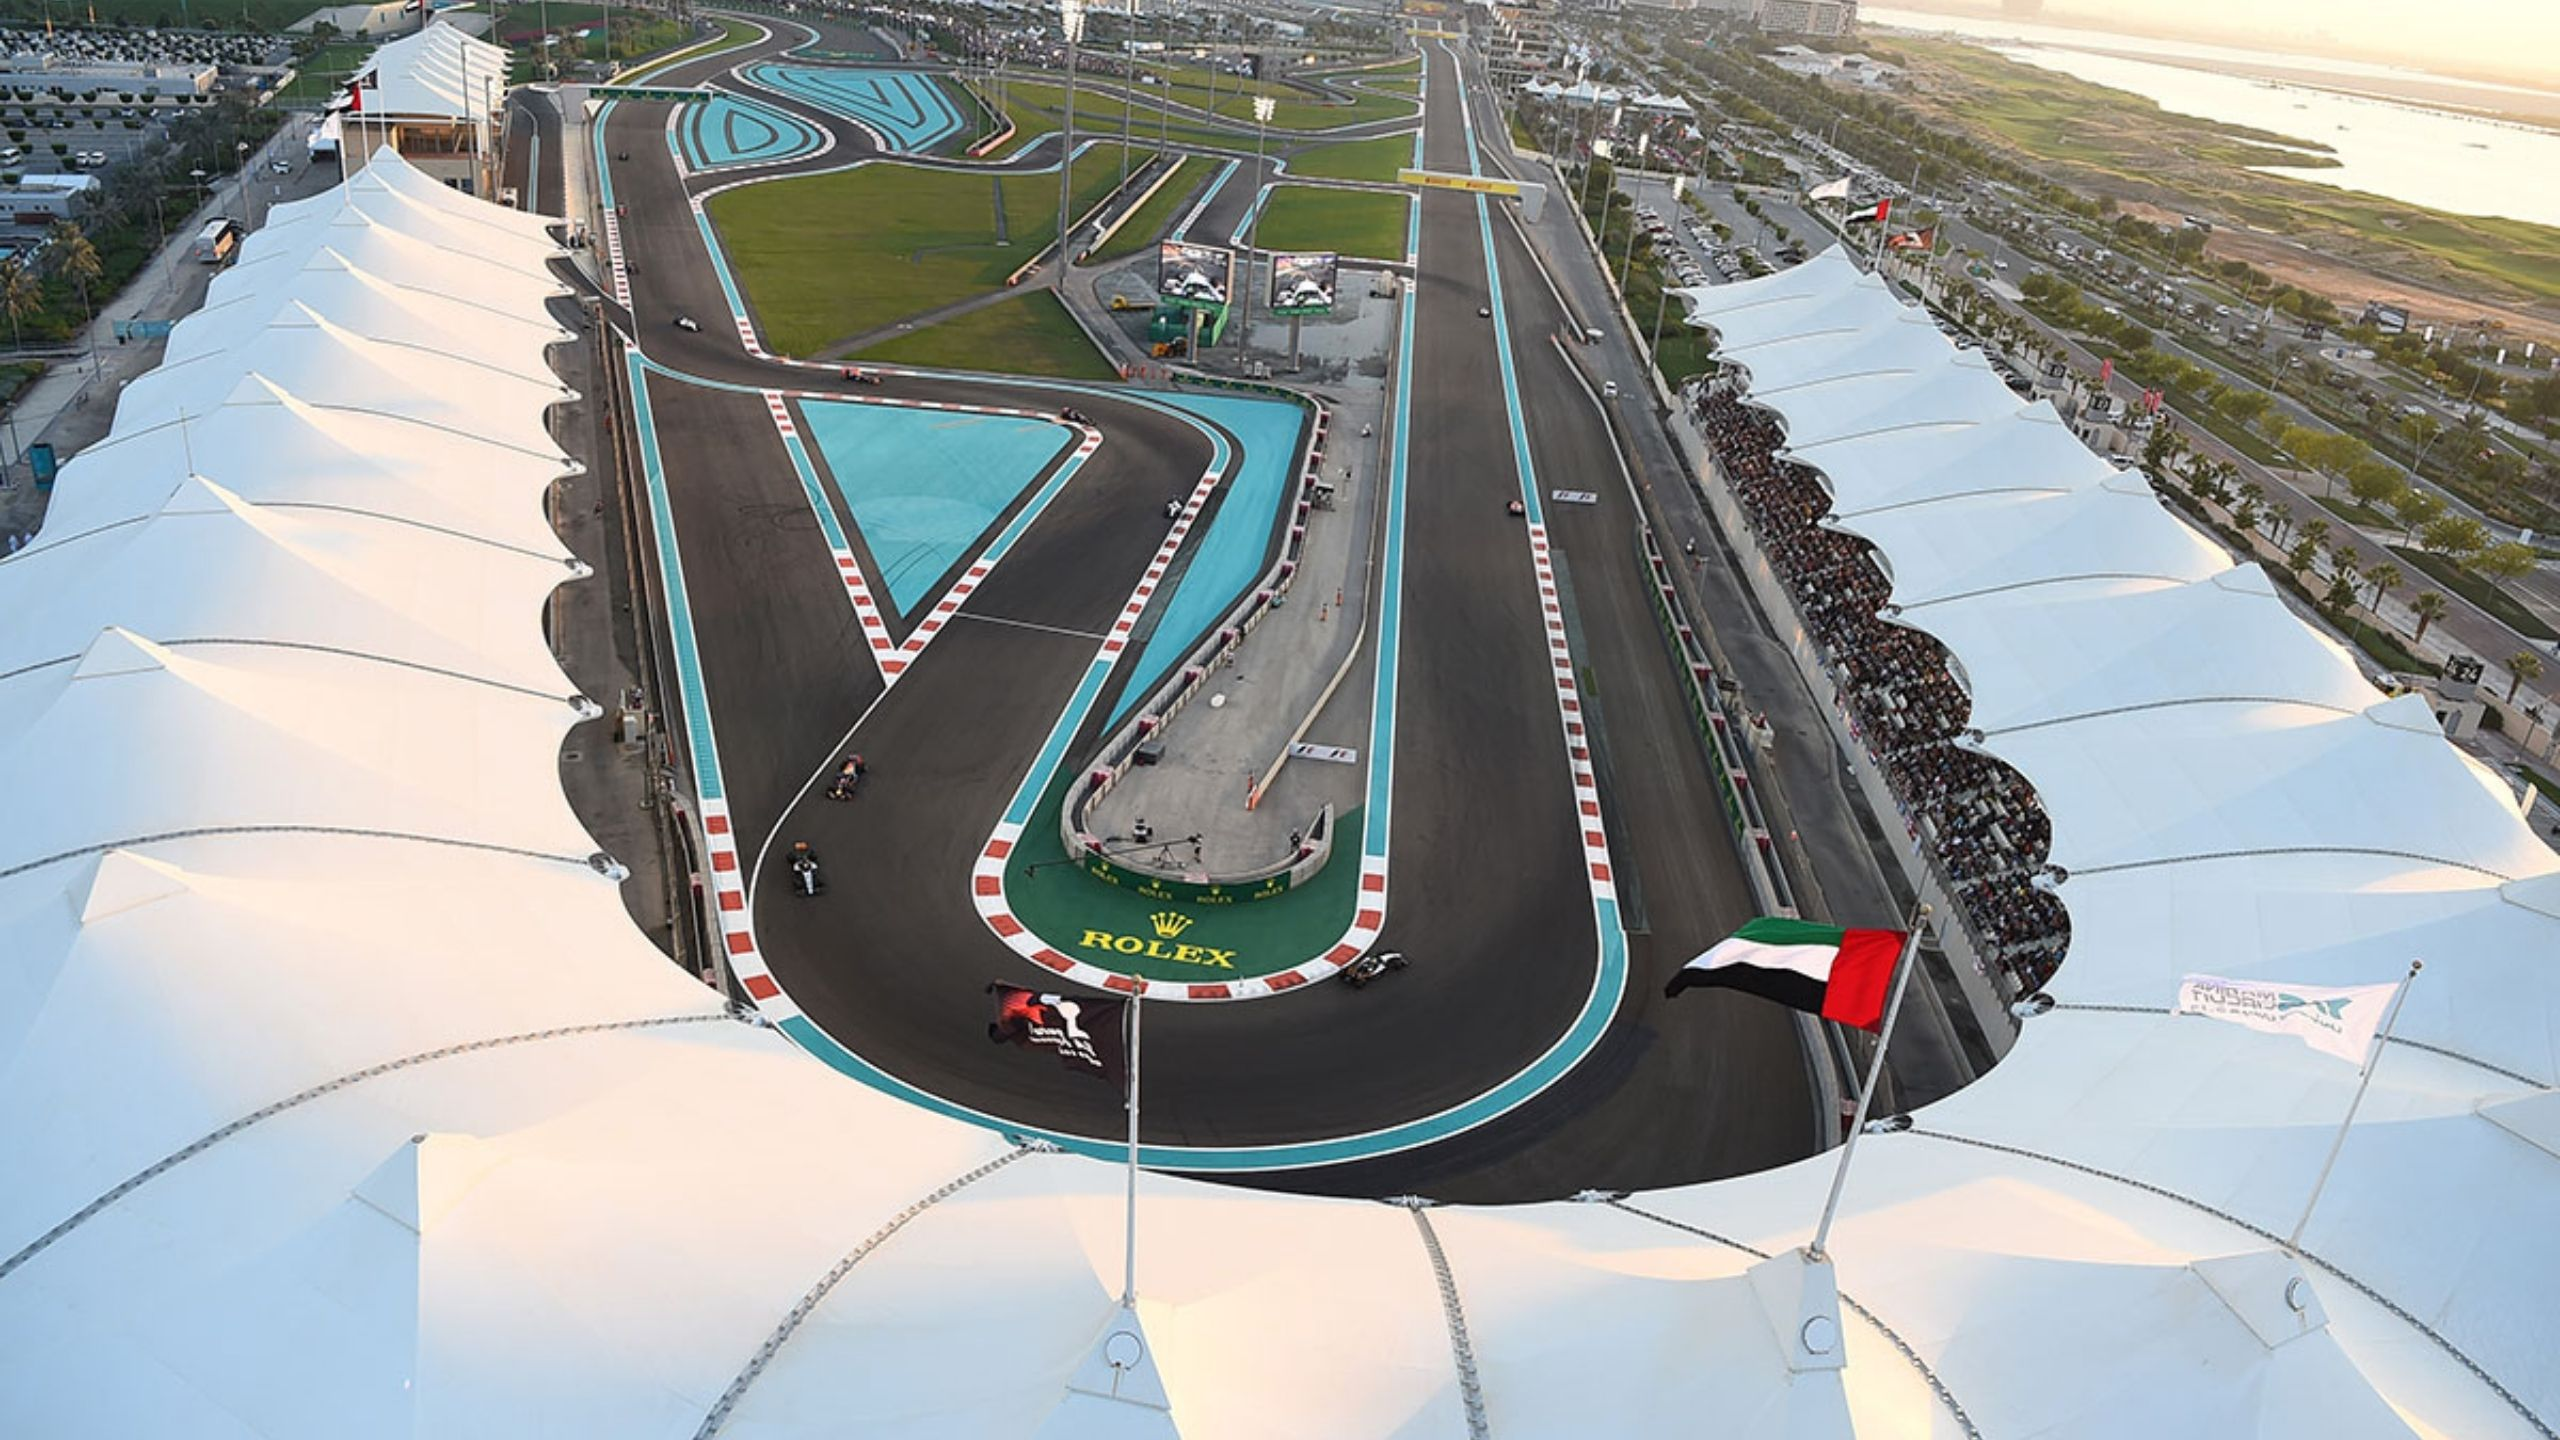 F1 Live Stream Abu Dhabi GP 2020, Start Time & Broadcast Channel: When and Where to watch F1 Free Practice, Qualifying and Race held in Abu Dhabi?